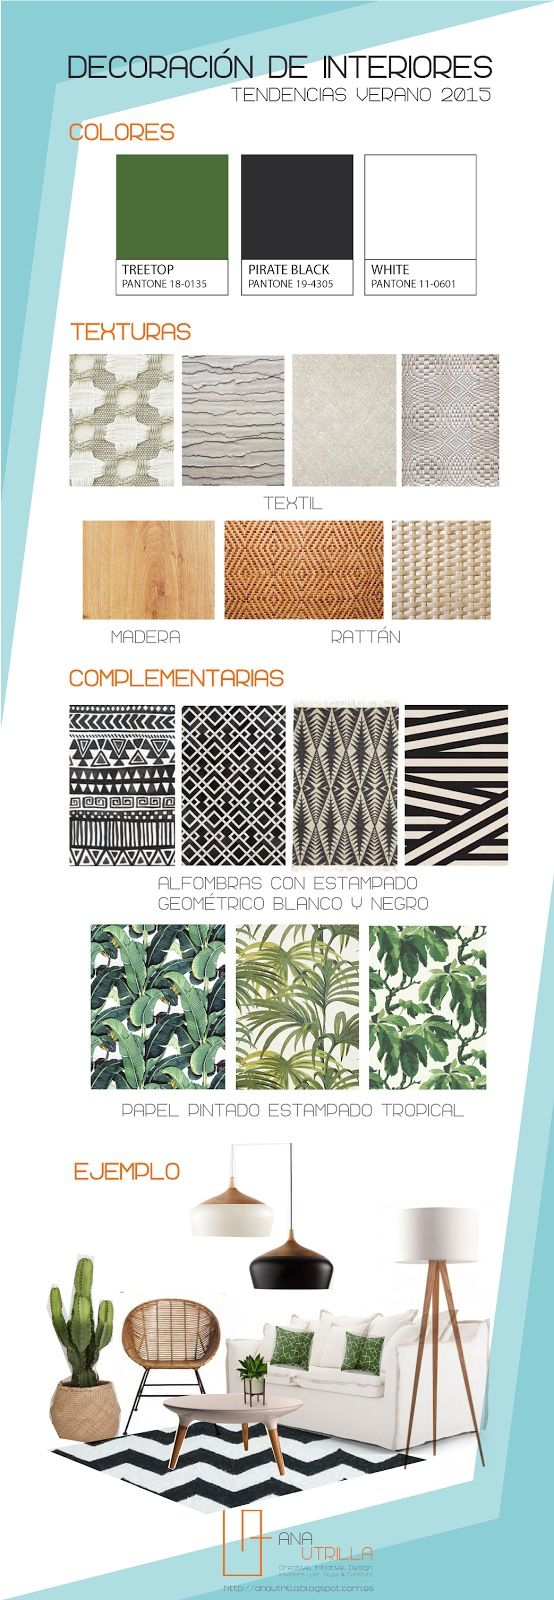 Decorar espacios con tendencia tropical 2015